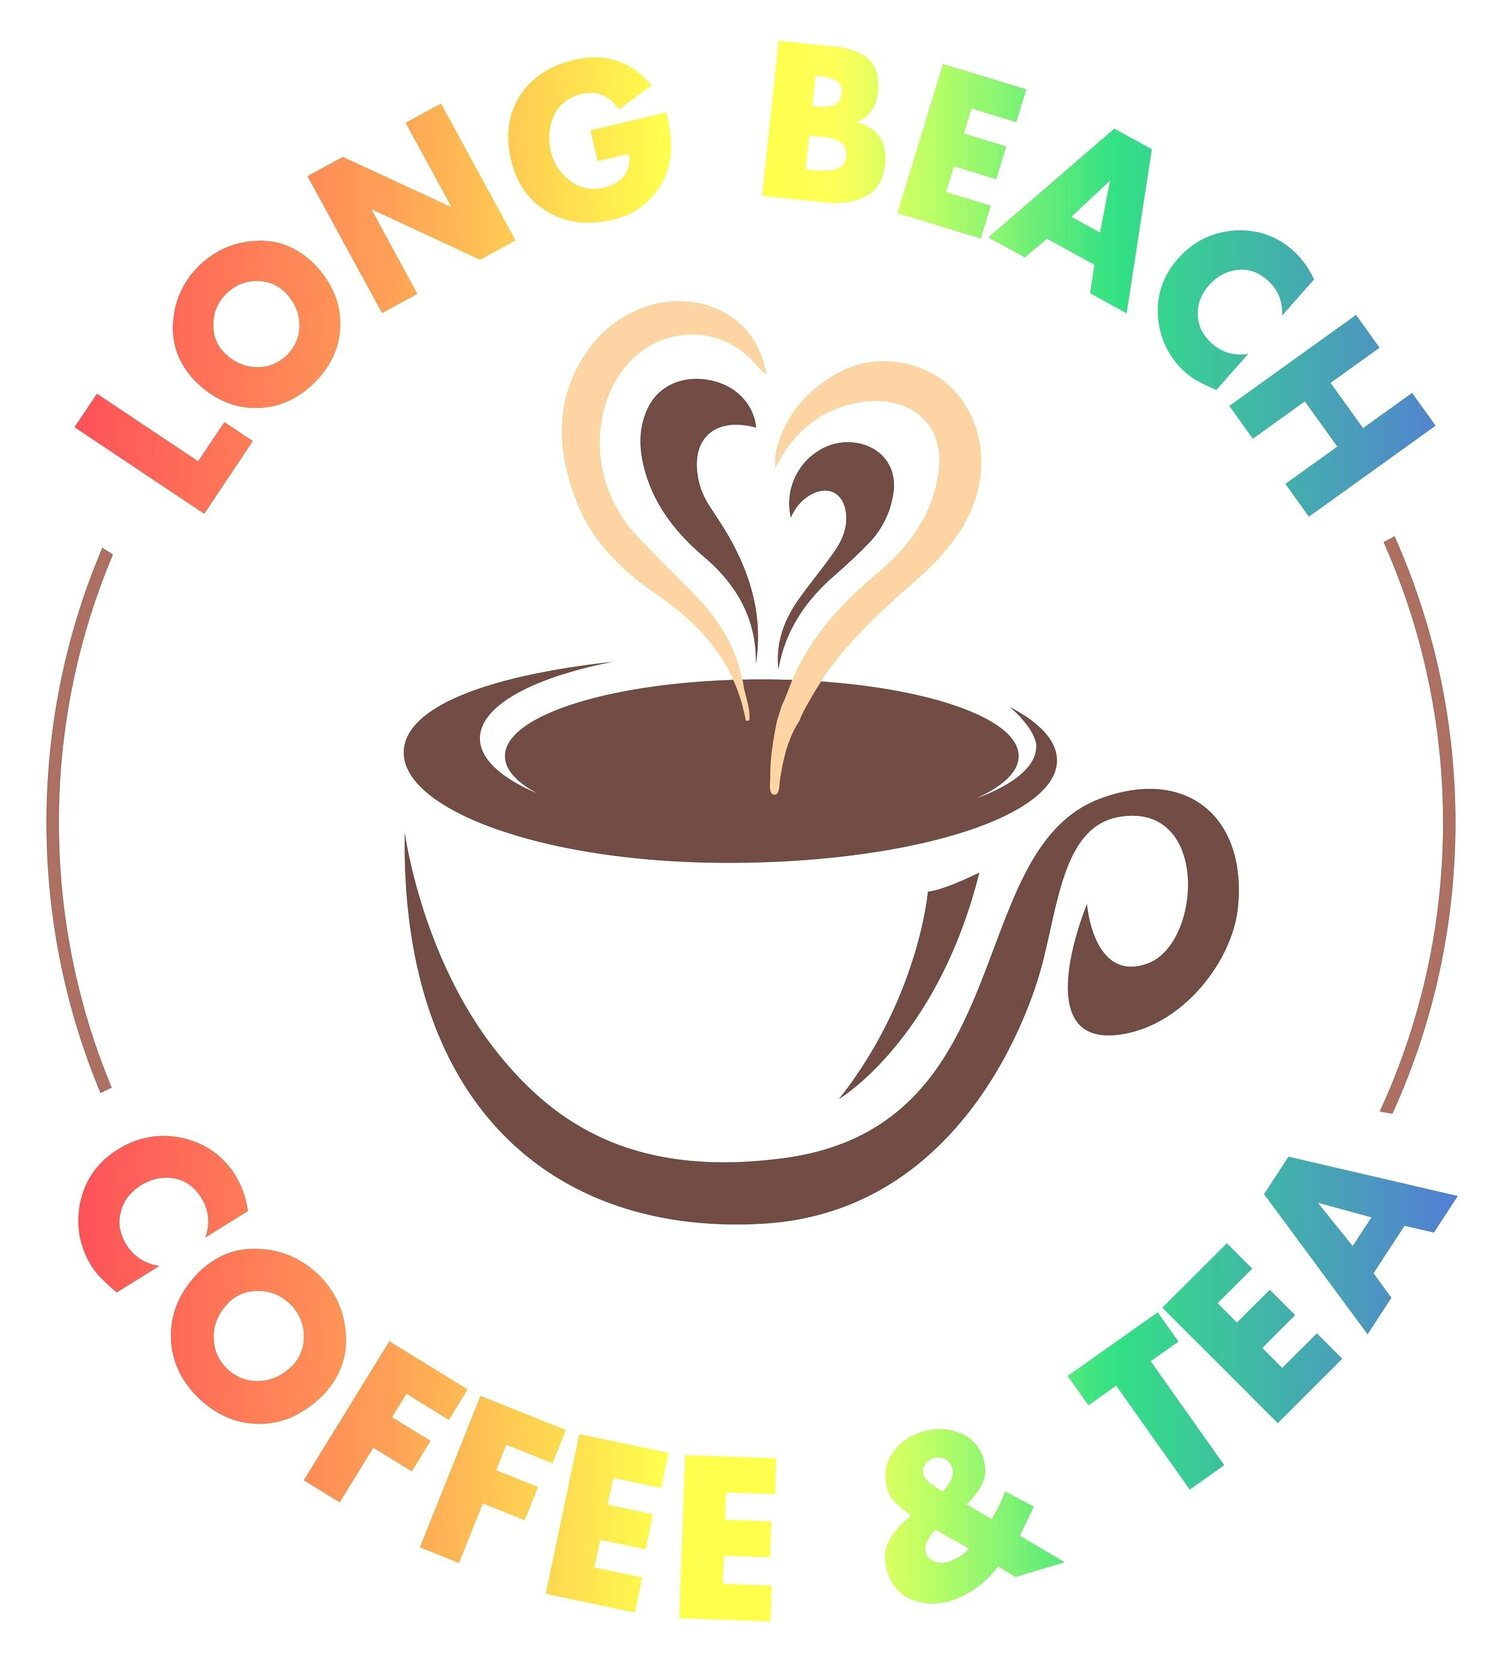 Long Beach Coffee & Tea